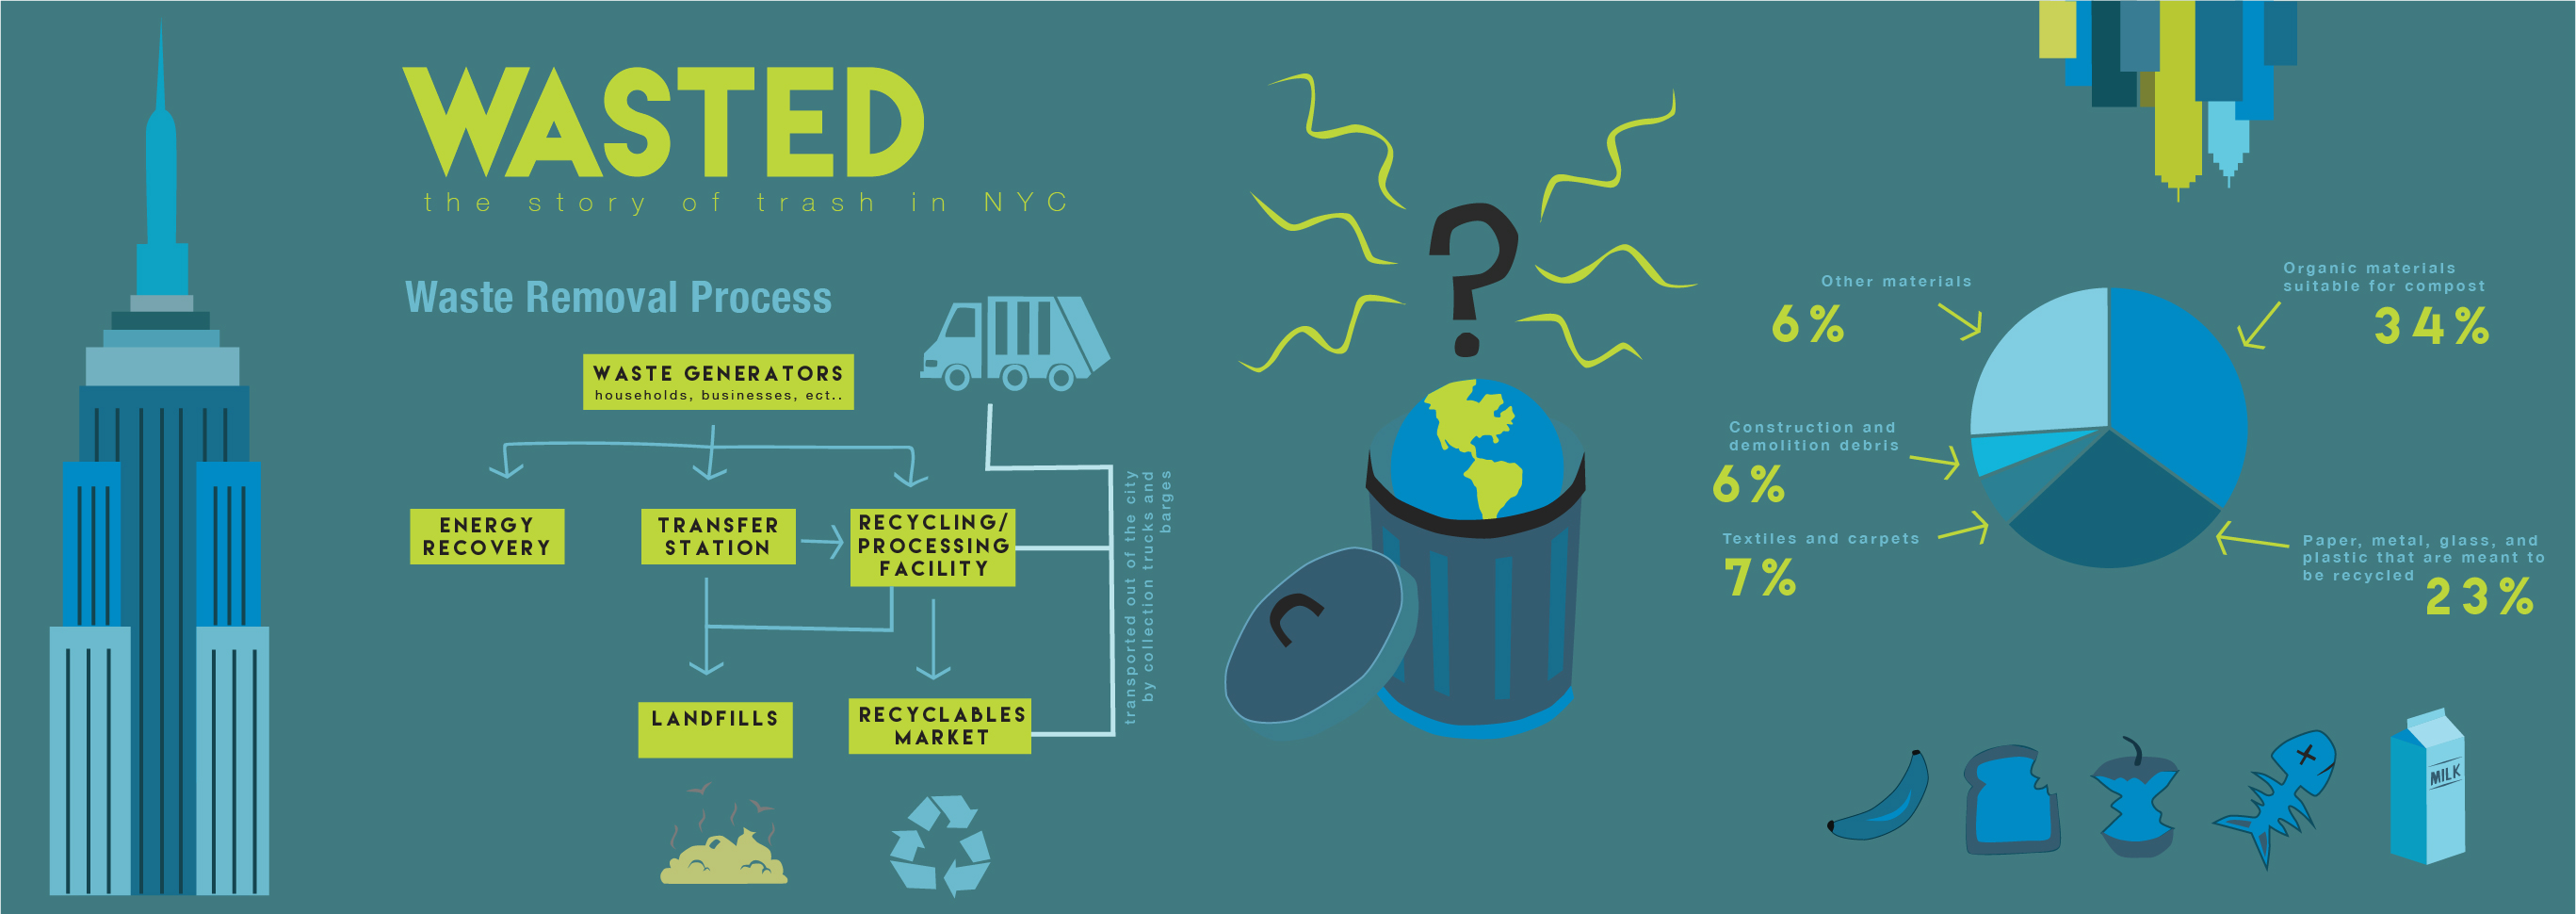 NYC Waste Infographic